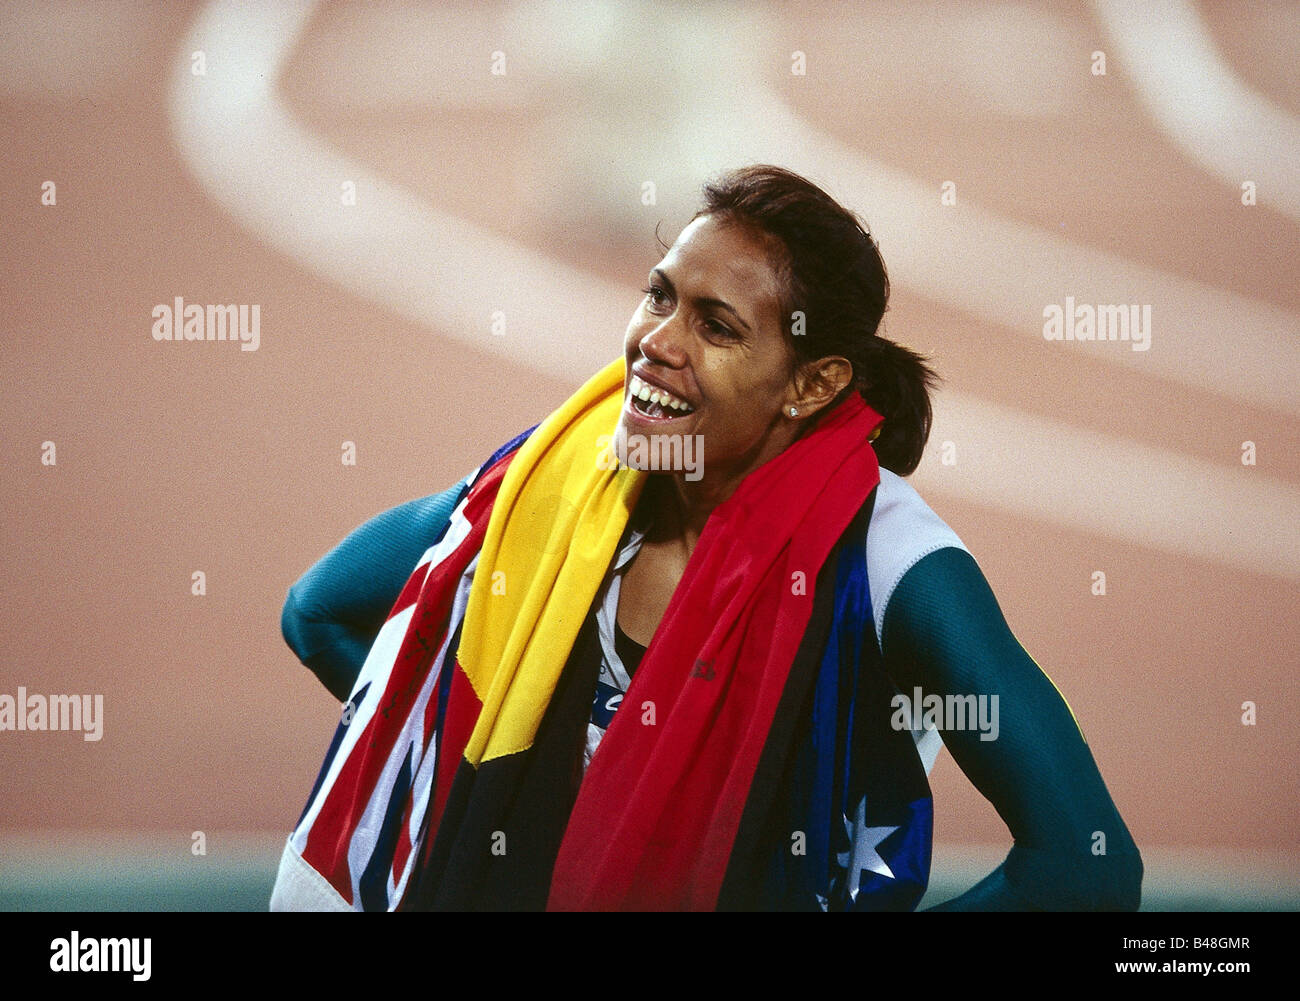 Freeman Cathy, * 16.2.1973, half length, Olympic Games, Sydney, 2000, Additional-Rights-Clearances-NA - Stock Image